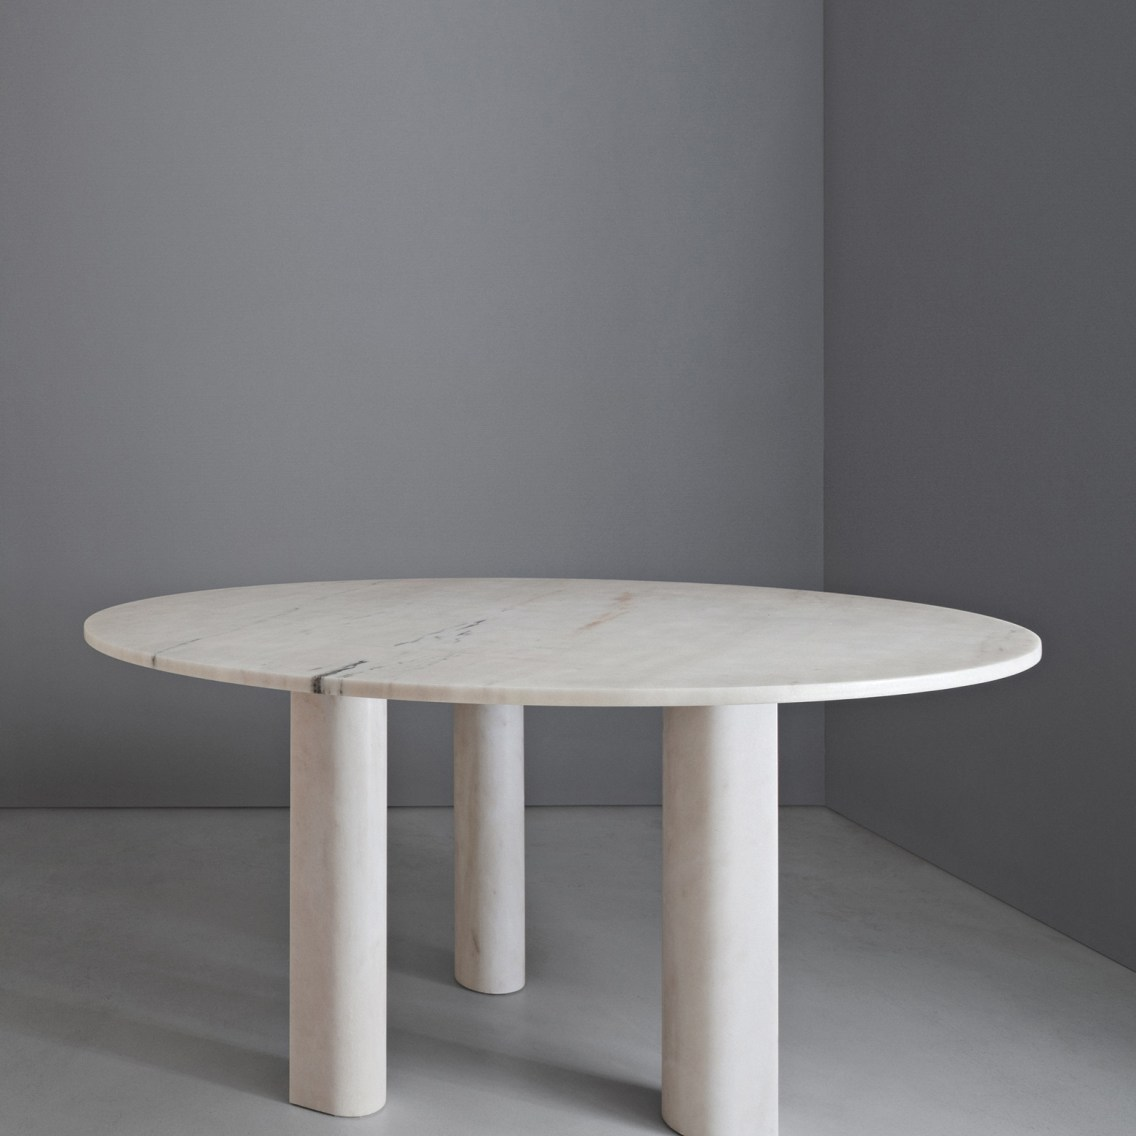 Salvatori_Table _Rosa Portogallo_01_wm